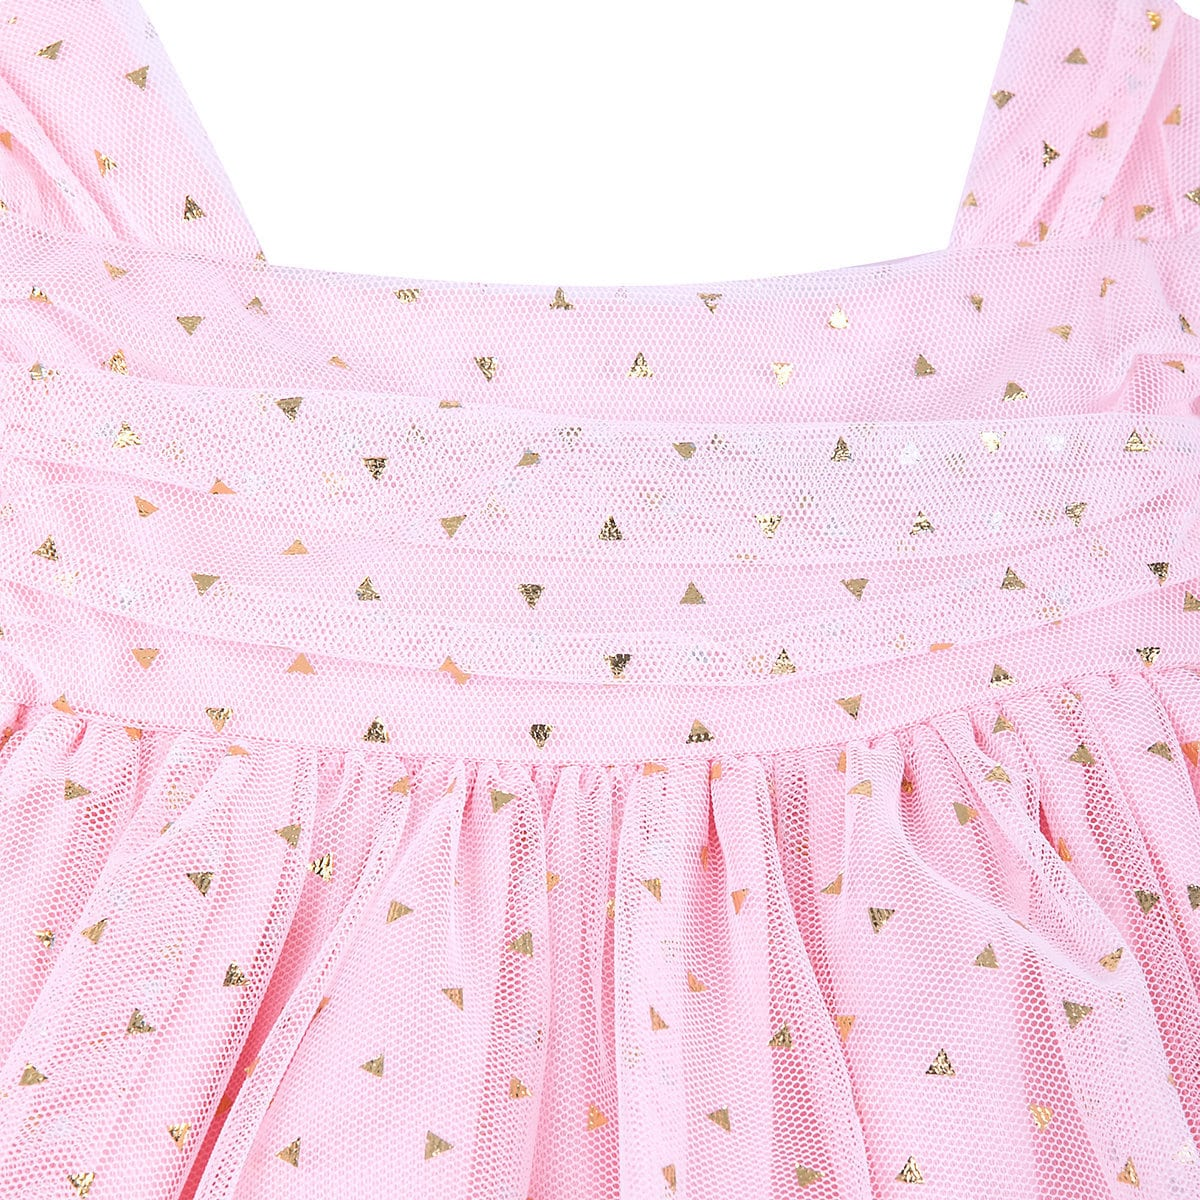 e1660a2a4 Product Image of Winnie the Pooh Dress Set for Baby # 5